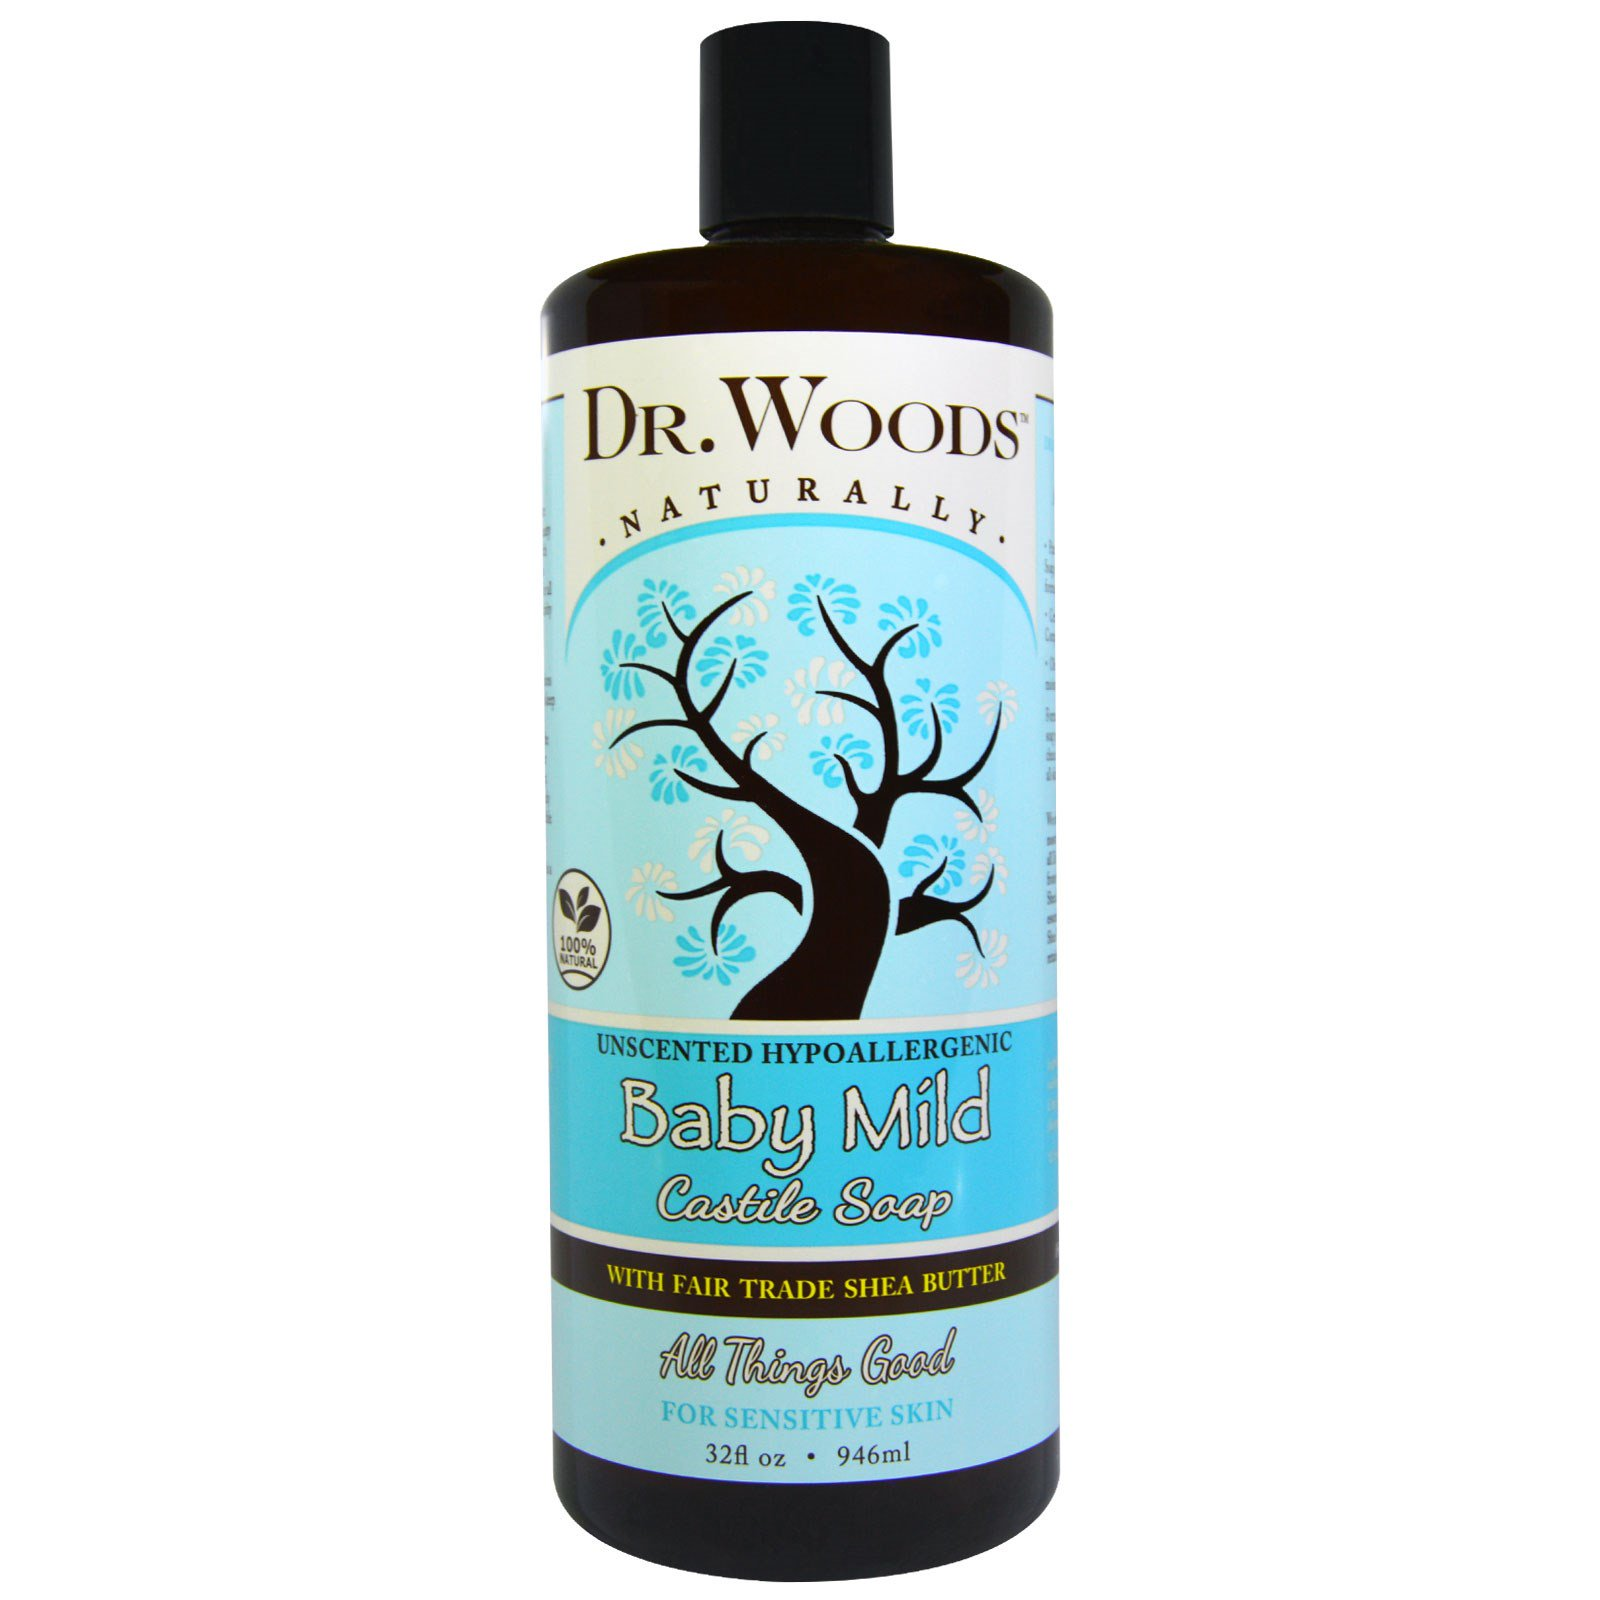 Dr  Woods, Baby Mild, Castile Soap with Fair Trade Shea